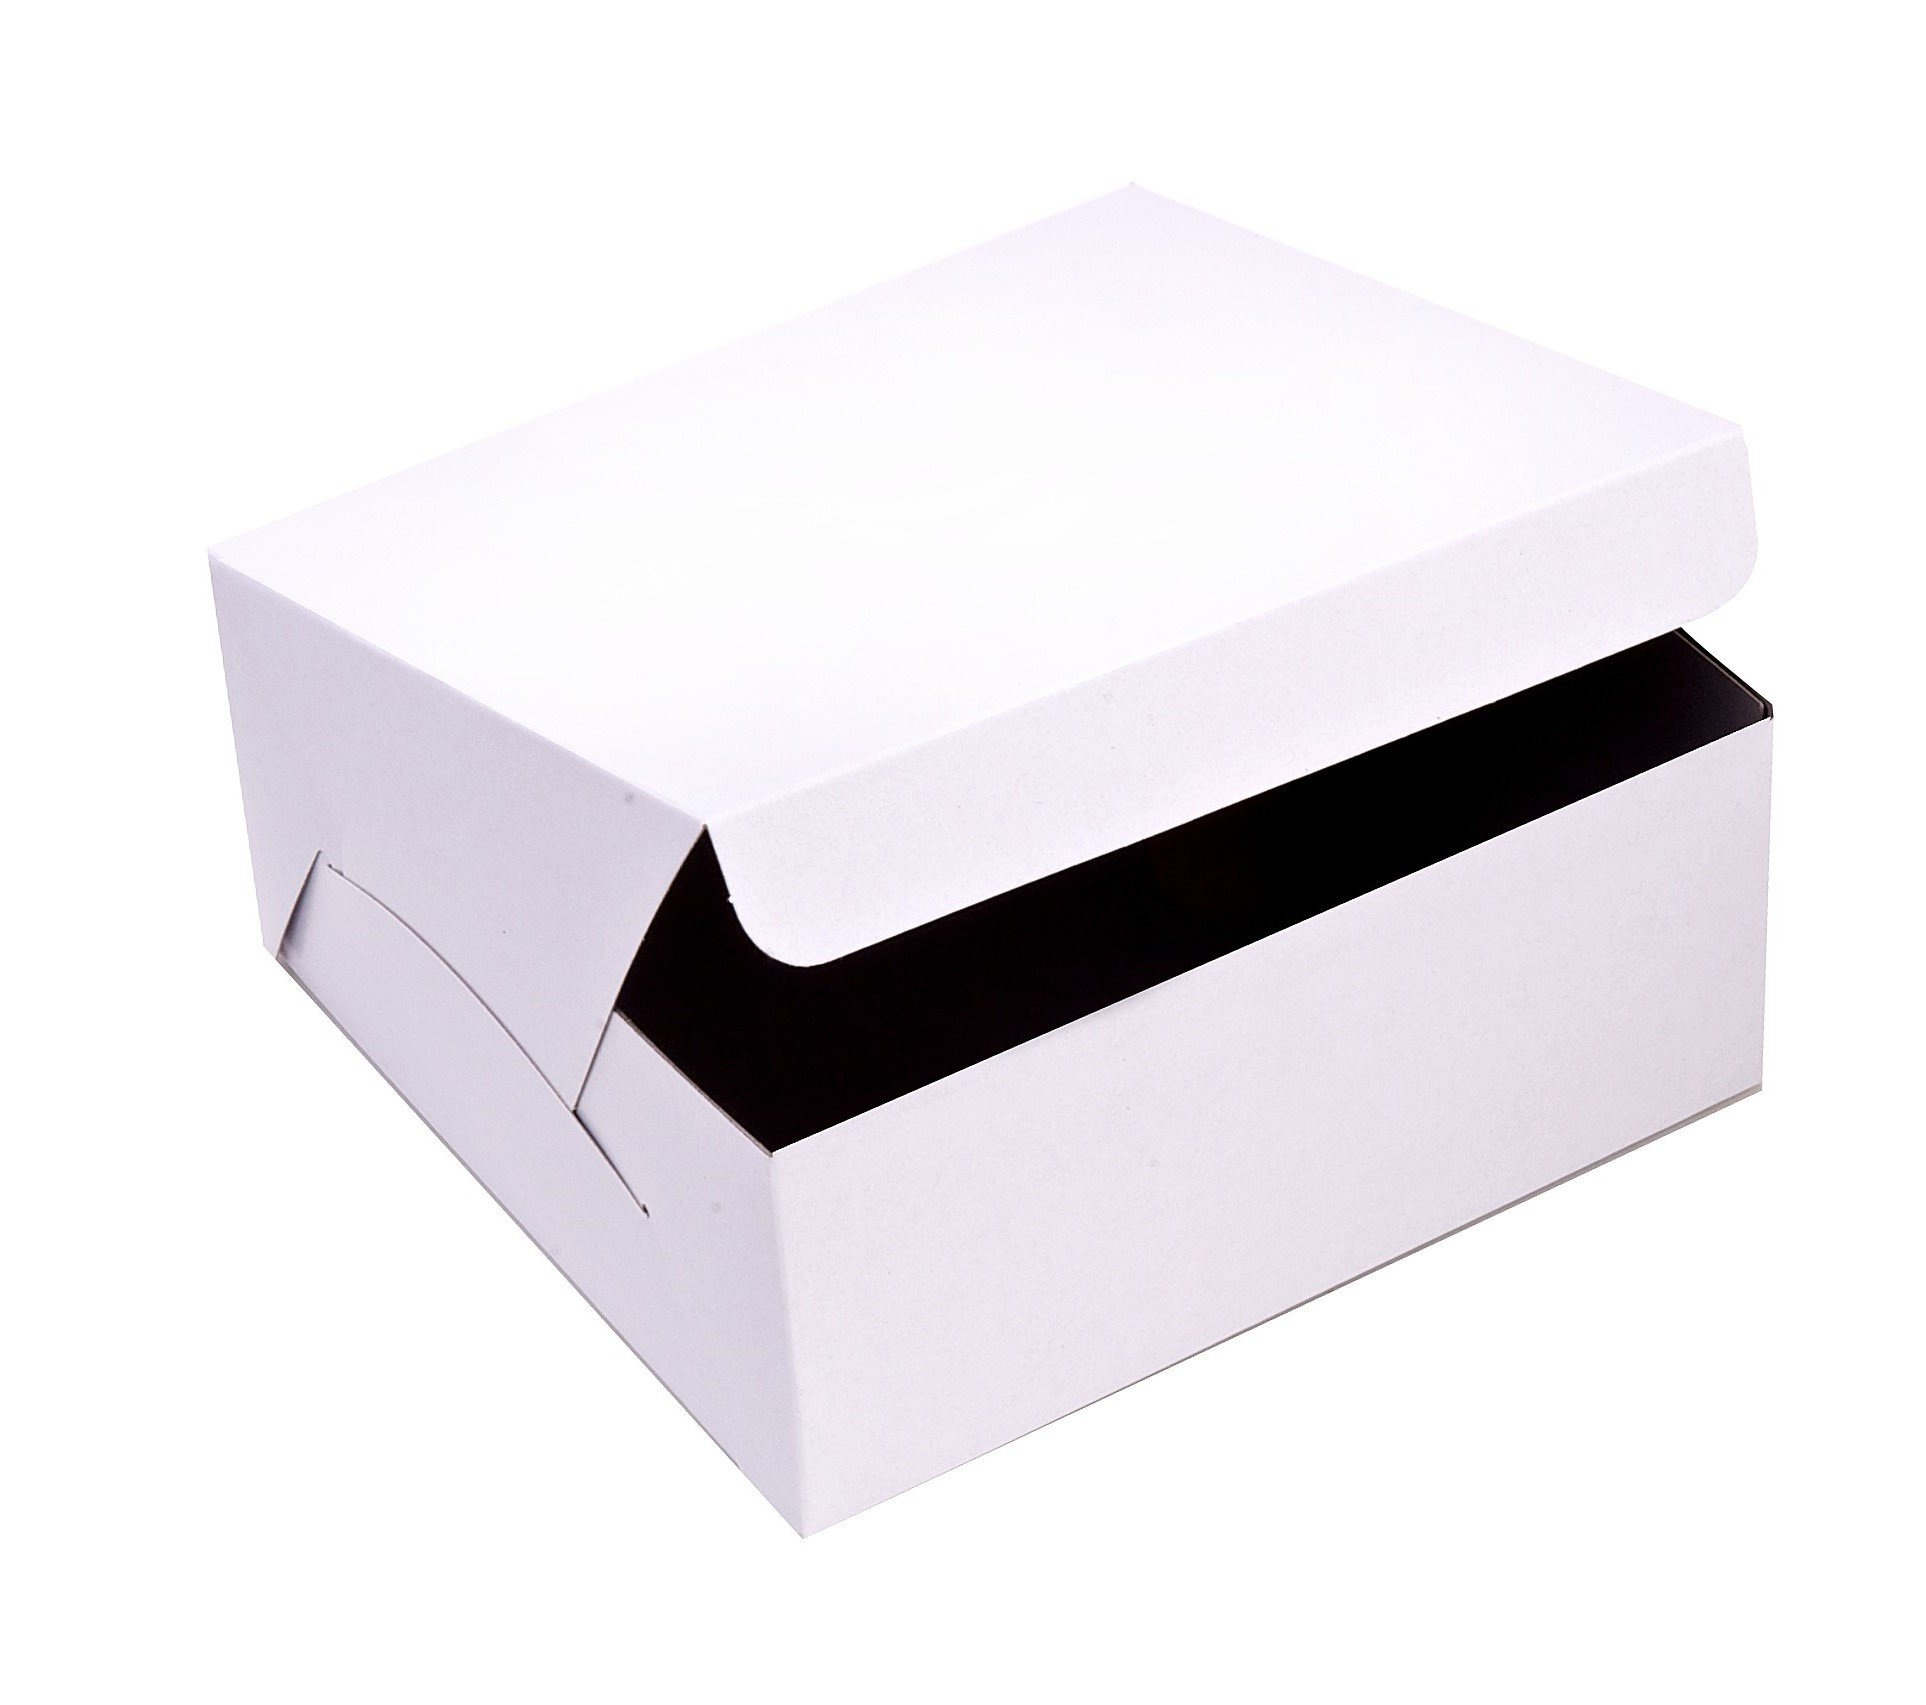 SafePro 14146C, 14x14x6-Inch Cardboard Cake Boxes, Take Out Disposable Paper Cake Pie Containers, Wholesale White Bakery Box (100)